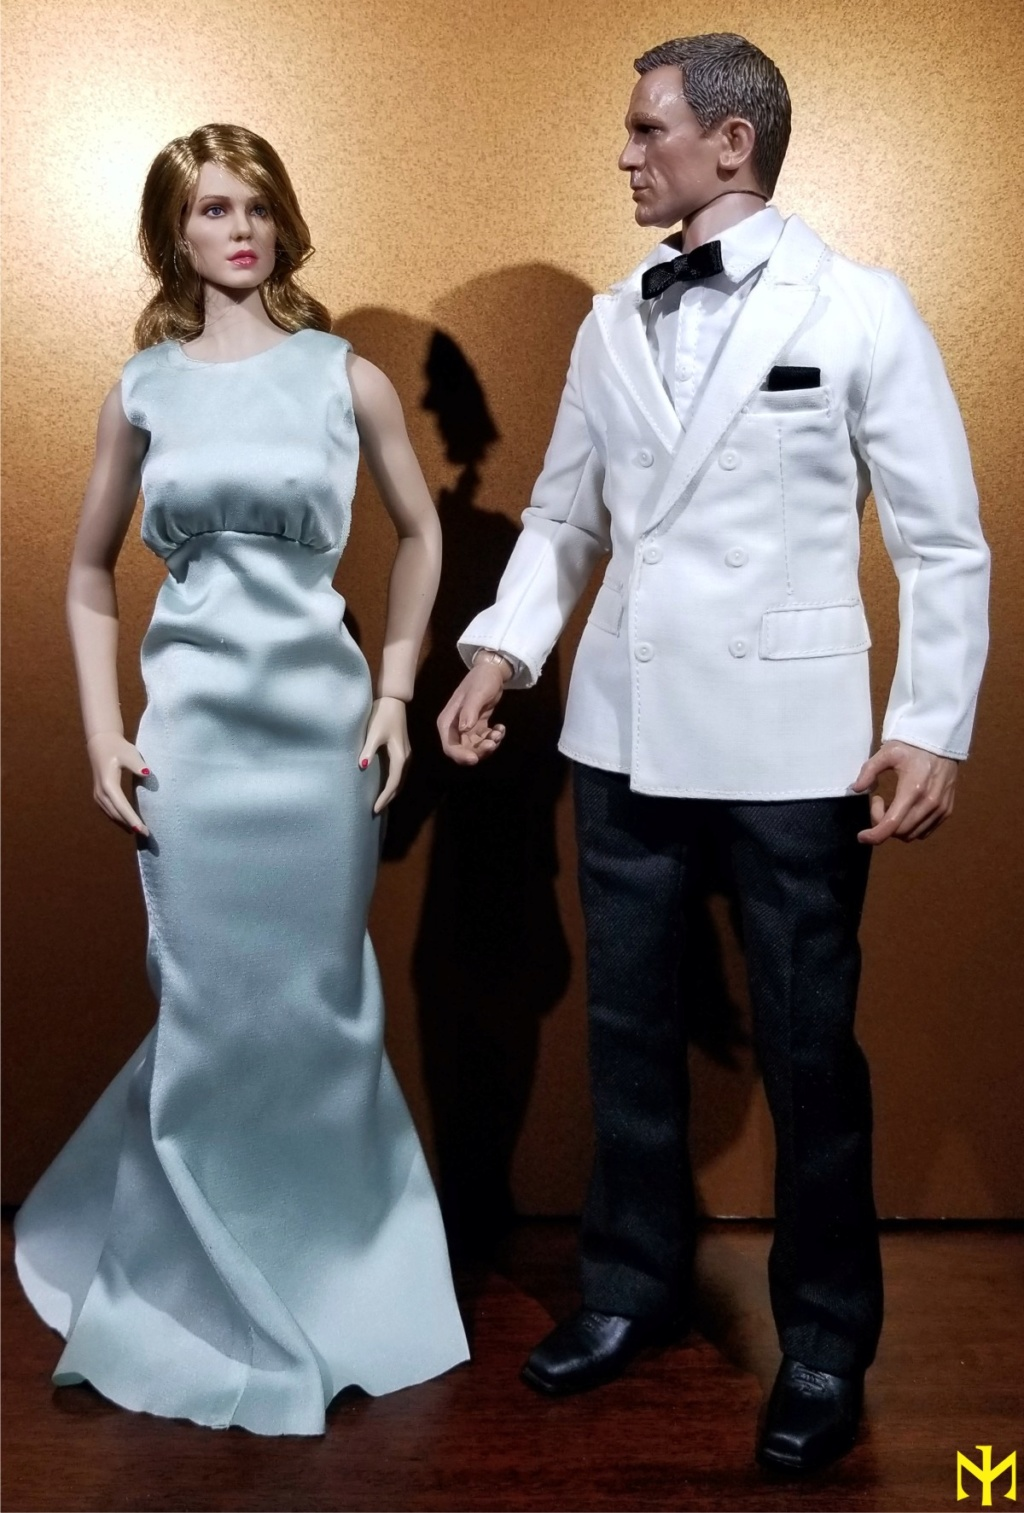 film - Black Box Toys BBT9006 Spectre Girl (Madeleine Swann/Lea Seydoux) Review Bbtsg113